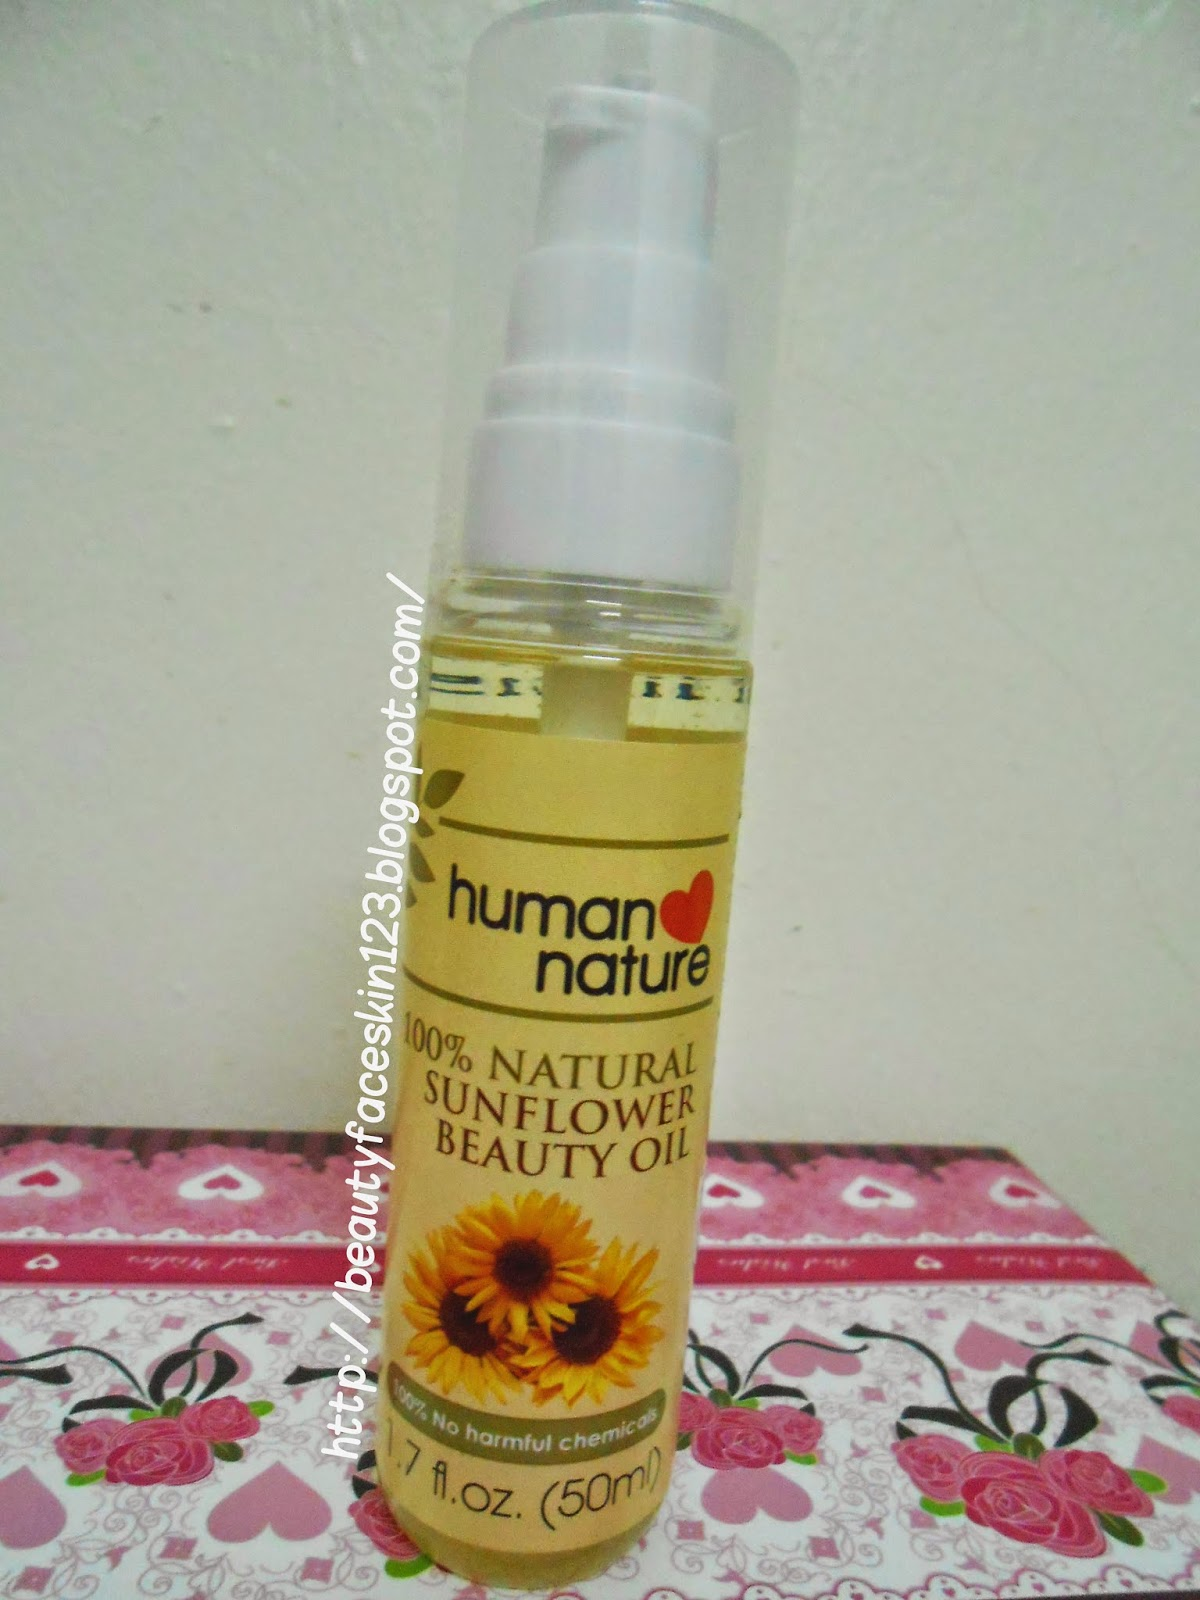 HUMAN NATURE SUNFLOWER BEAUTY FACE OIL